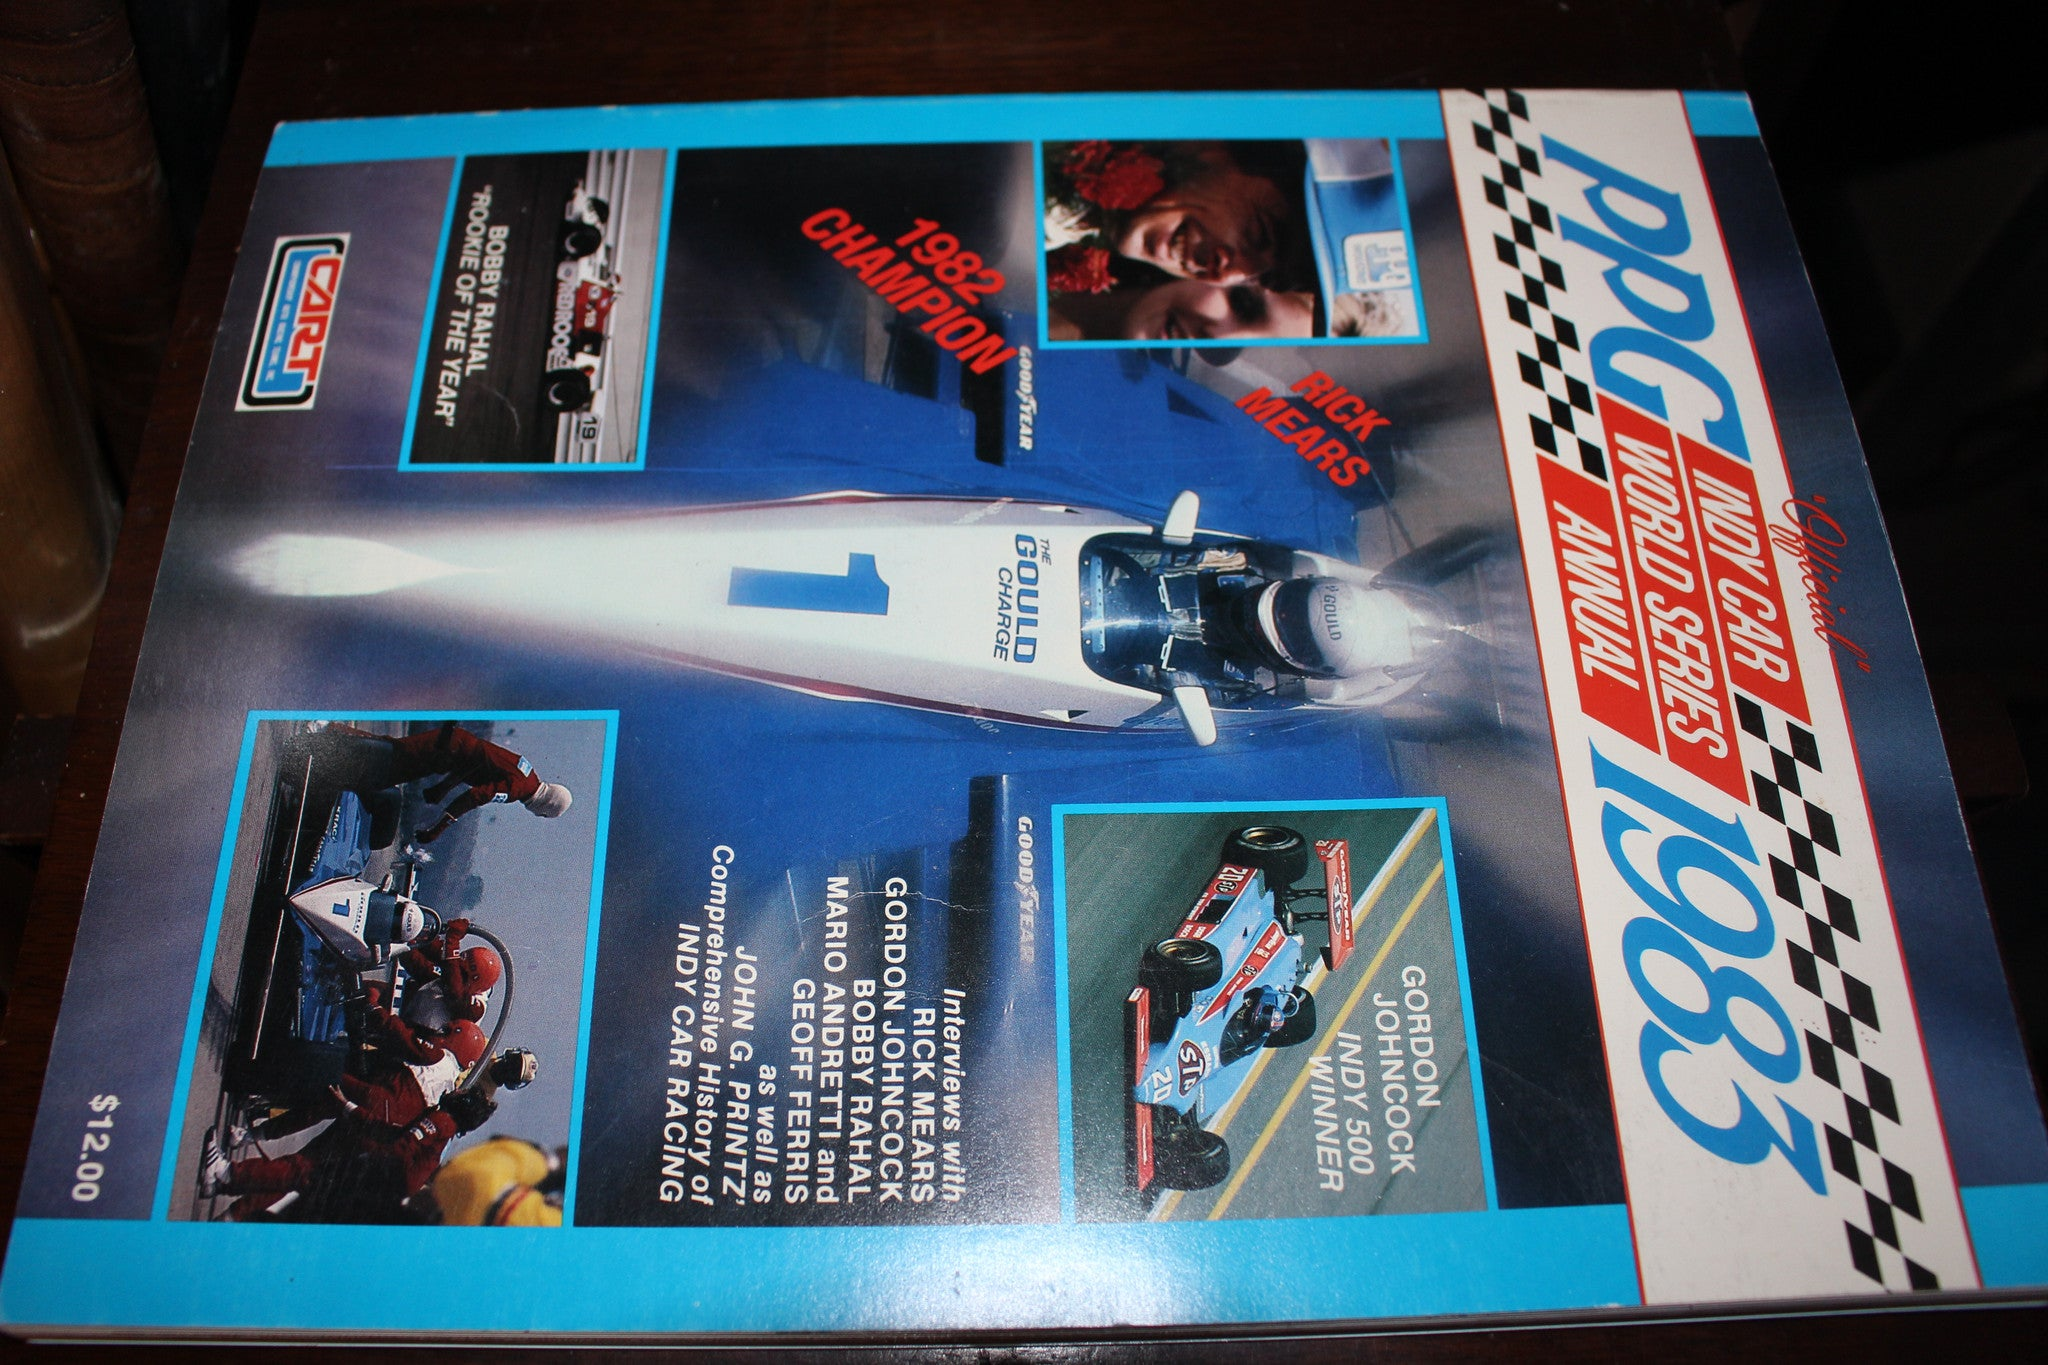 1983 PPG Indy Car World Series Annual CART - Vintage Indy Sports